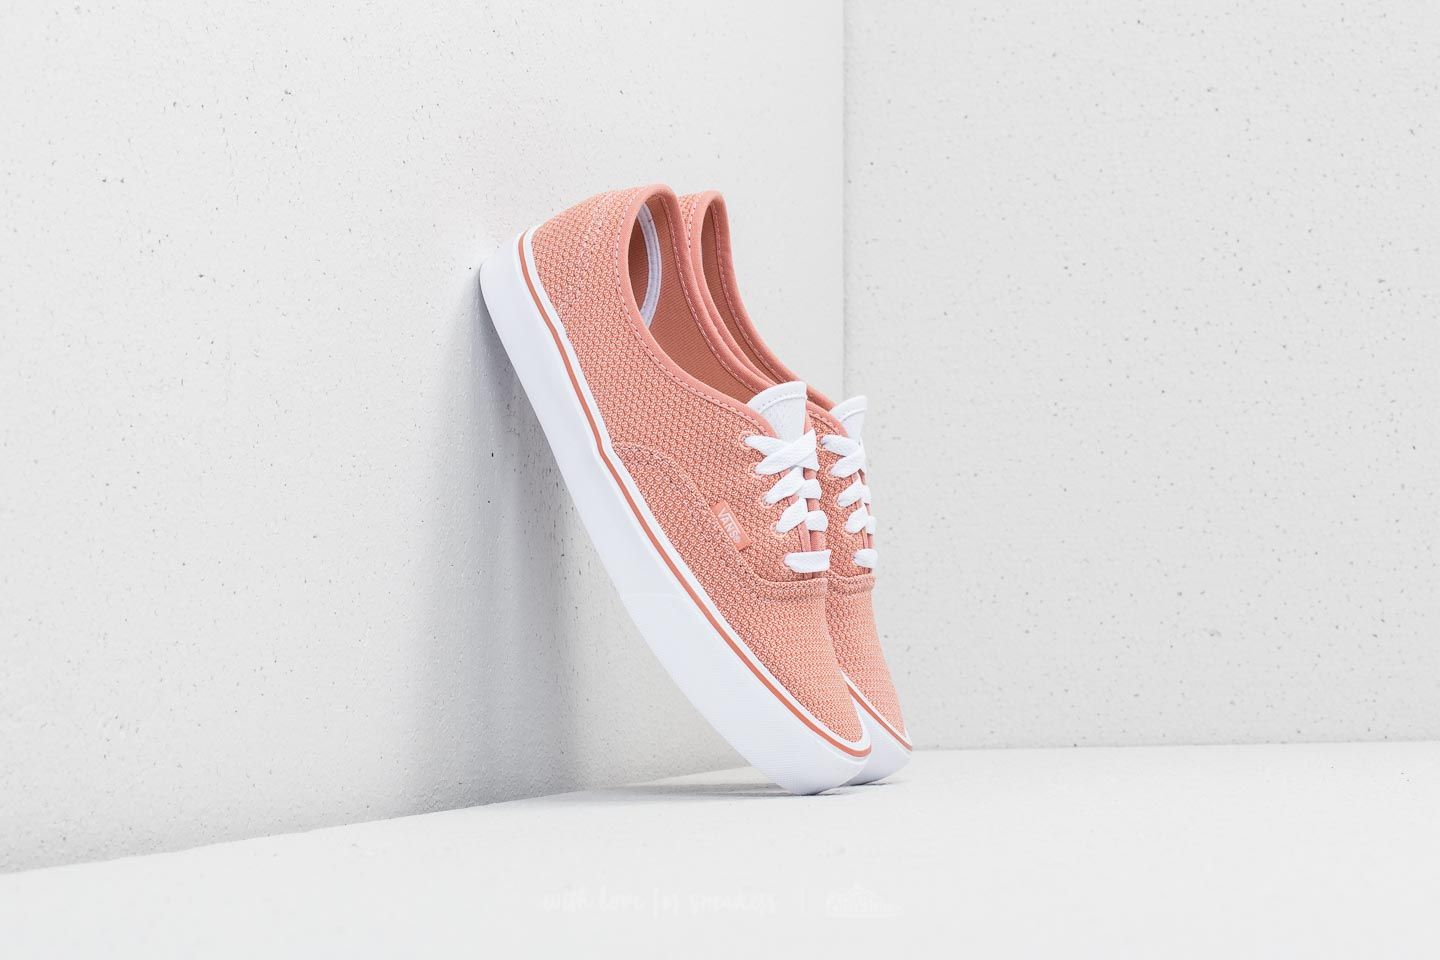 Vans Authentic Lite (Mesh) Evening Sand Muted Clay | Footshop